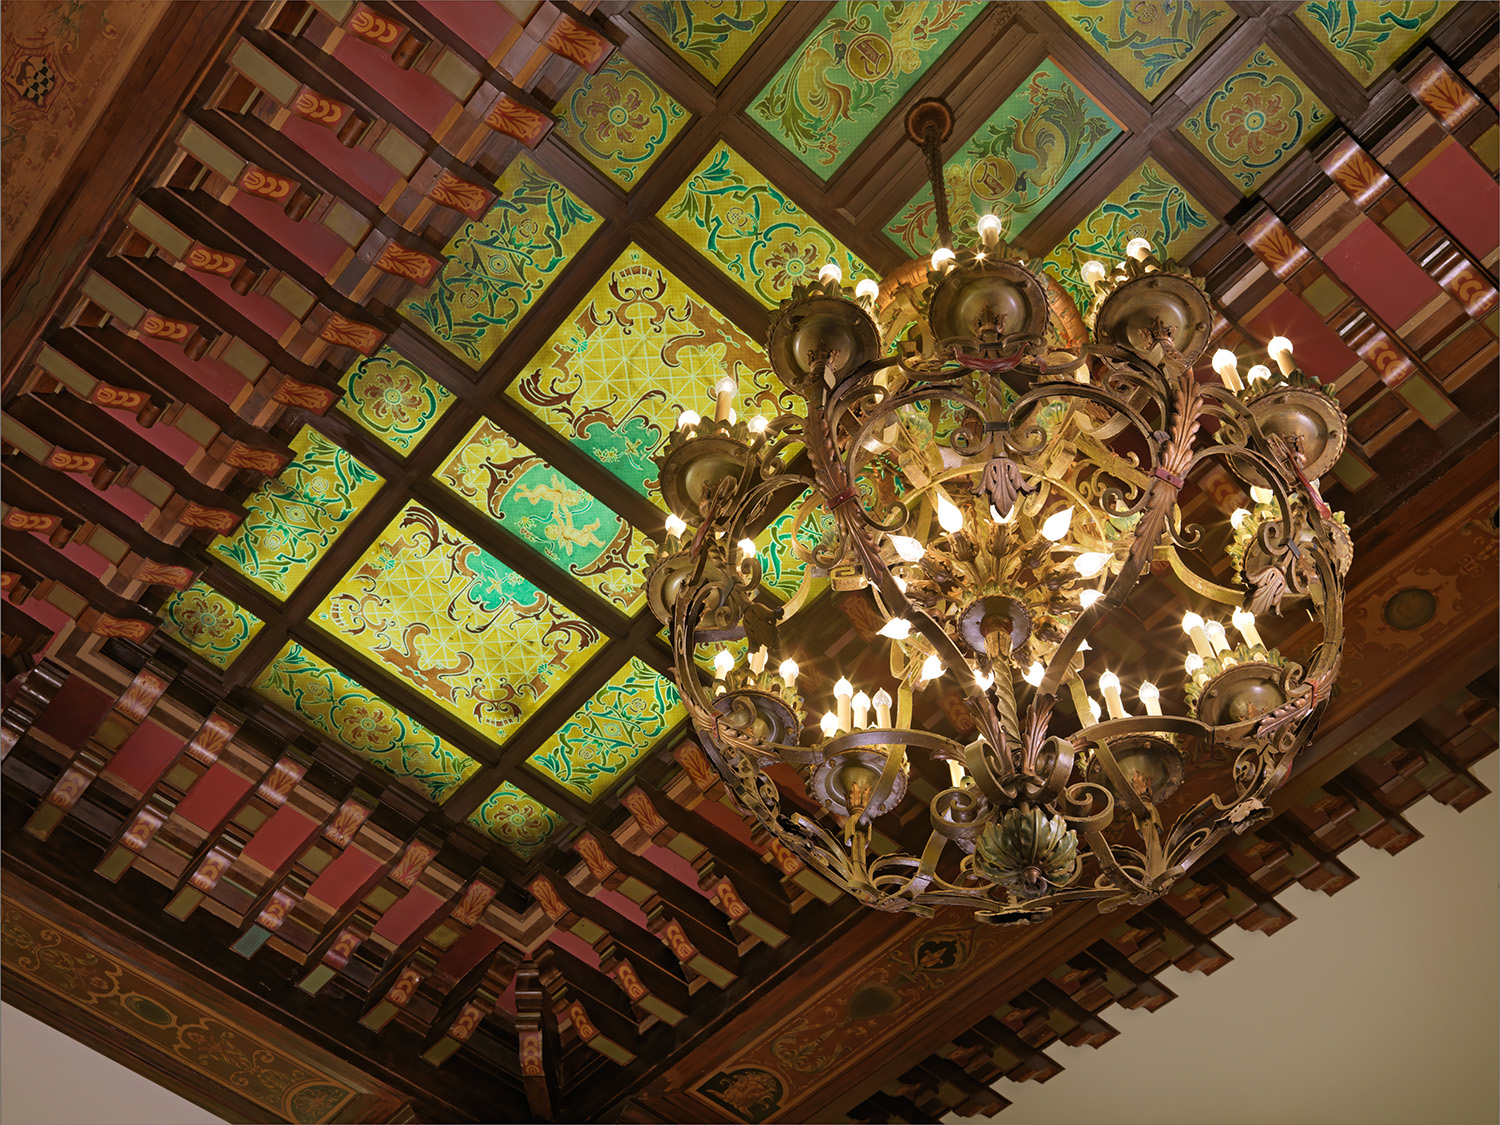 The Peabody's architecture and decor are charming, elegant and grand.